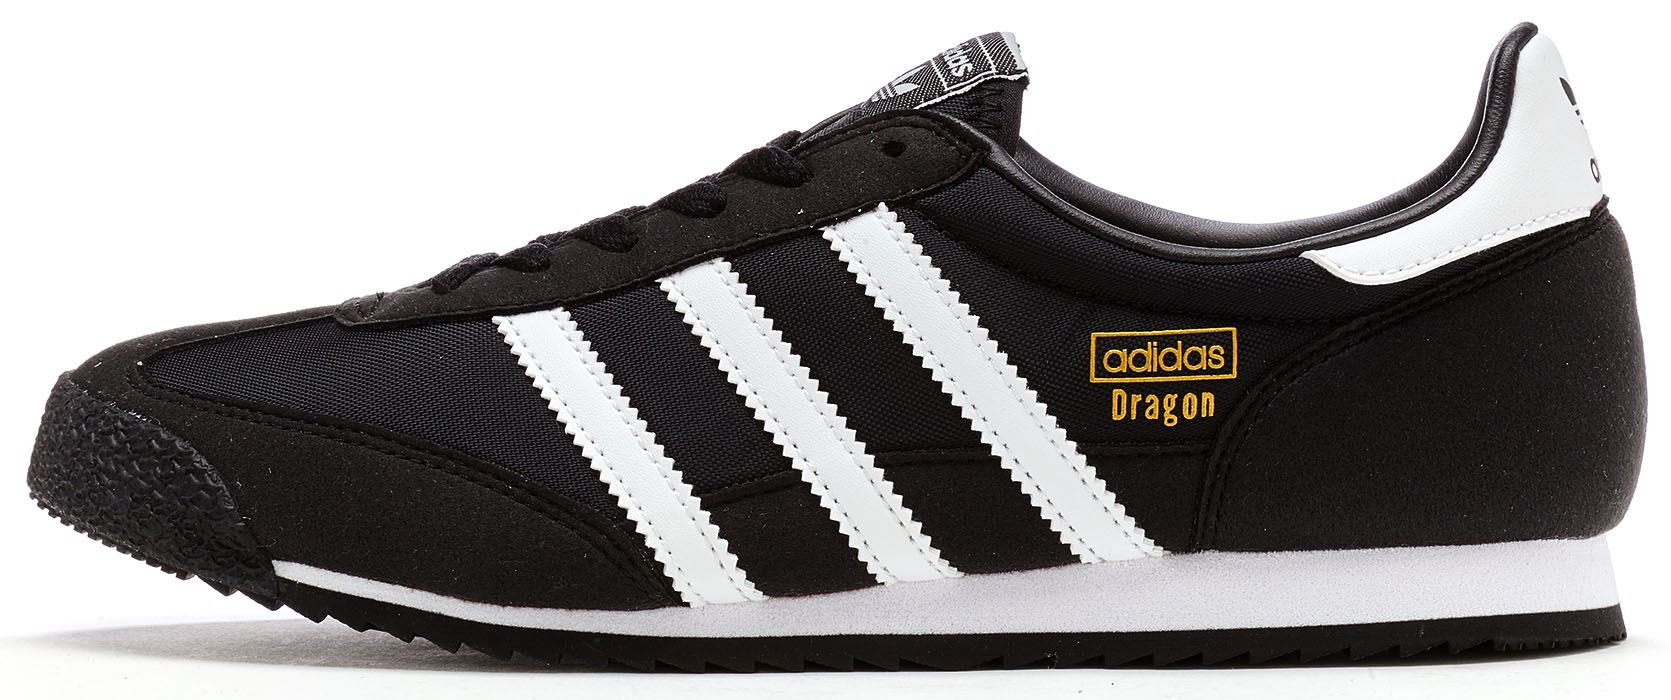 ADIDAS Originali GS DRAGON OG Scarpe sportive in camoscio nero bb2487